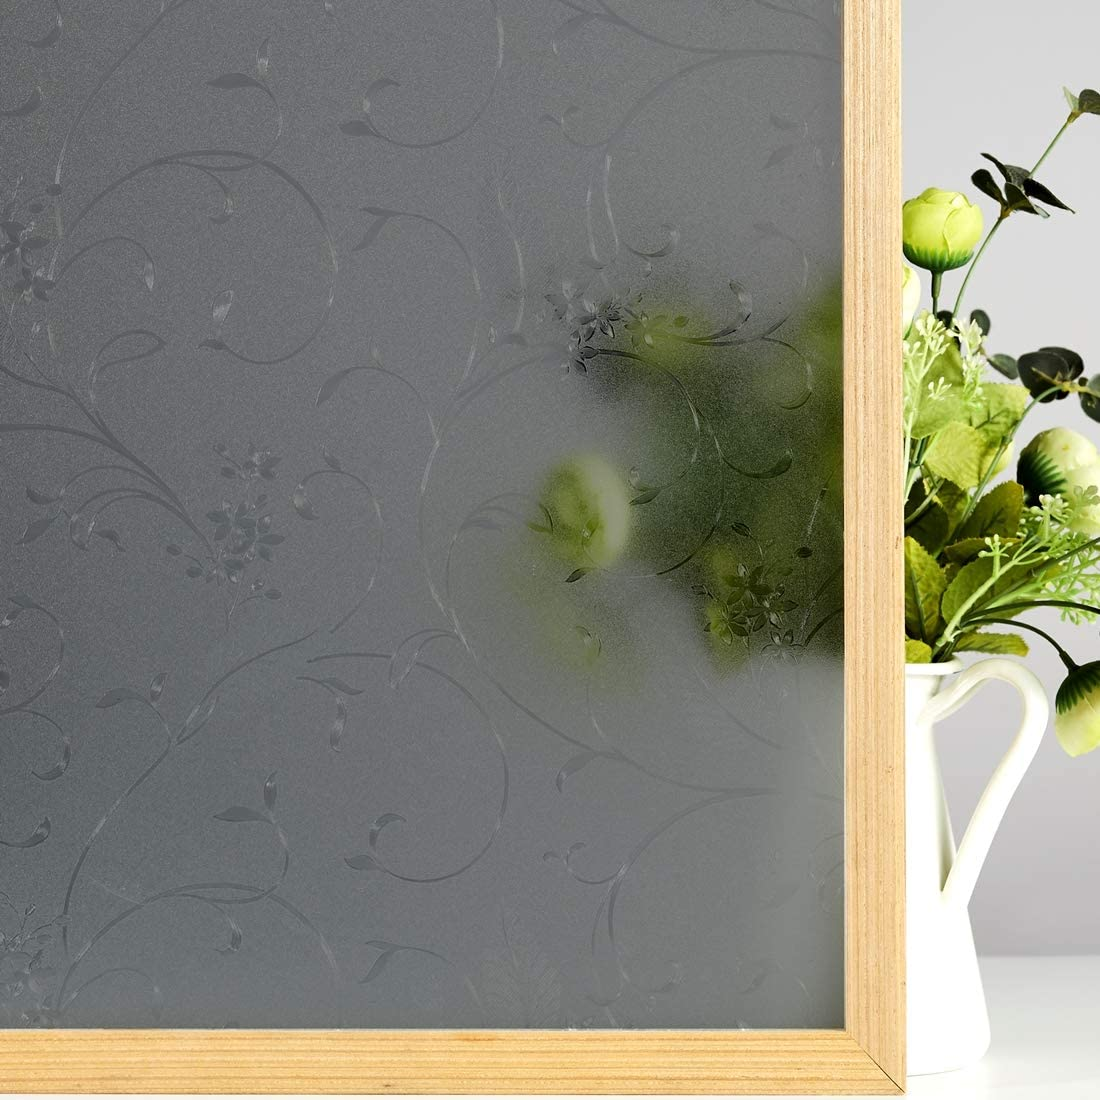 VELIMAX Etched Floral Textured Window Film Frosted Decorative Window Vinyl Privacy Glass Cling for Bathroom, Non-Adhesive, Translucent Black - 29.5